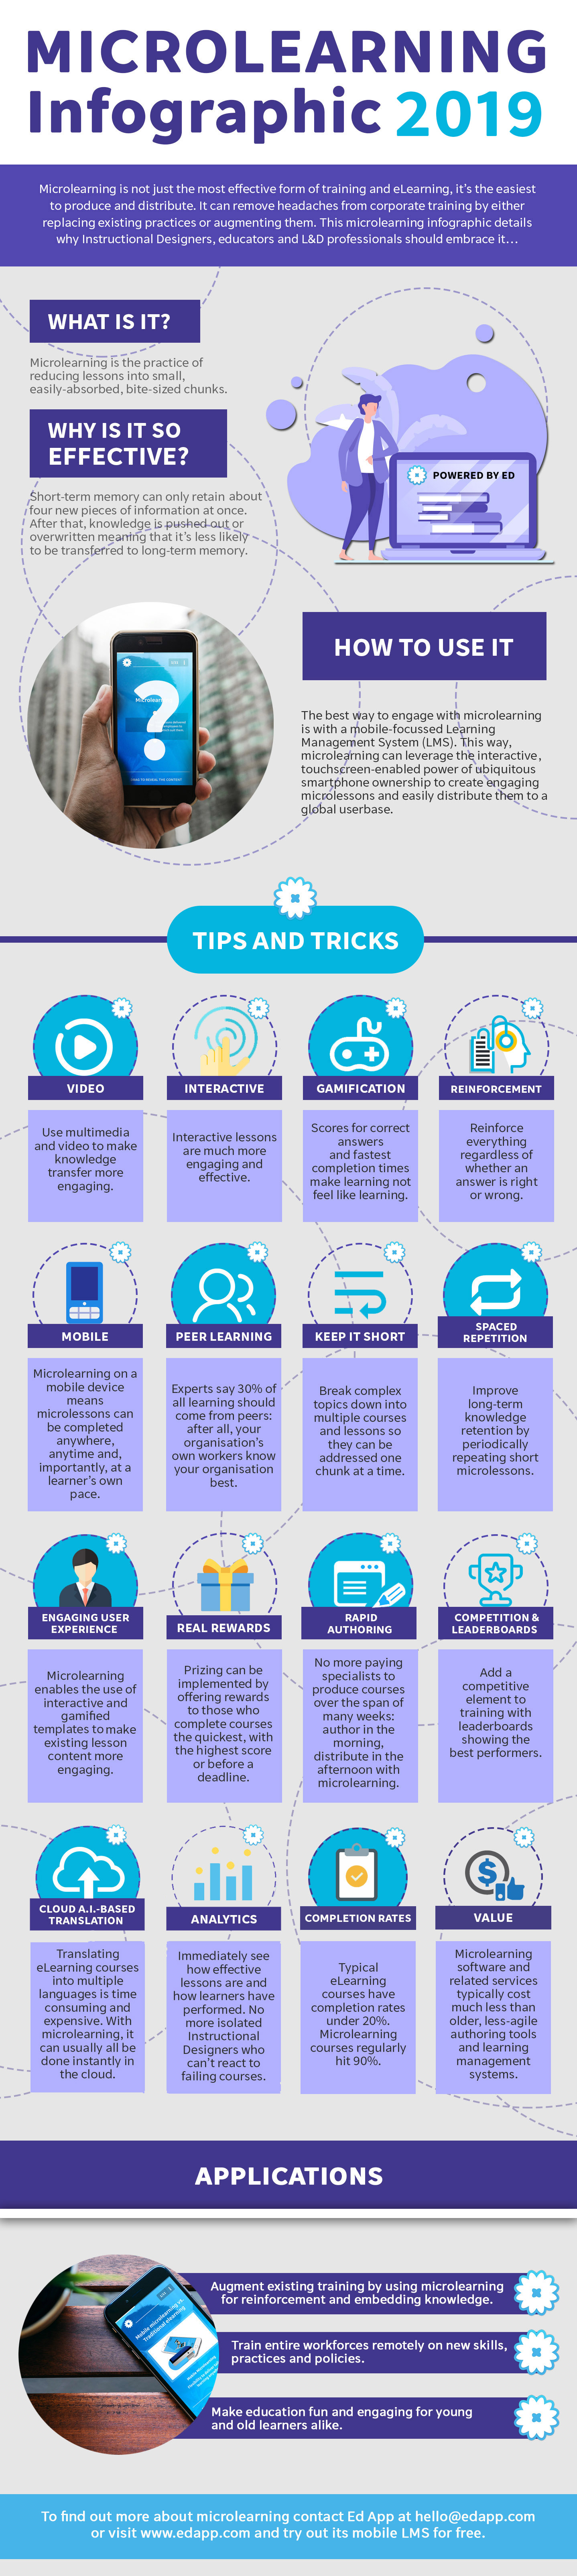 Microlearning Infographic 2019